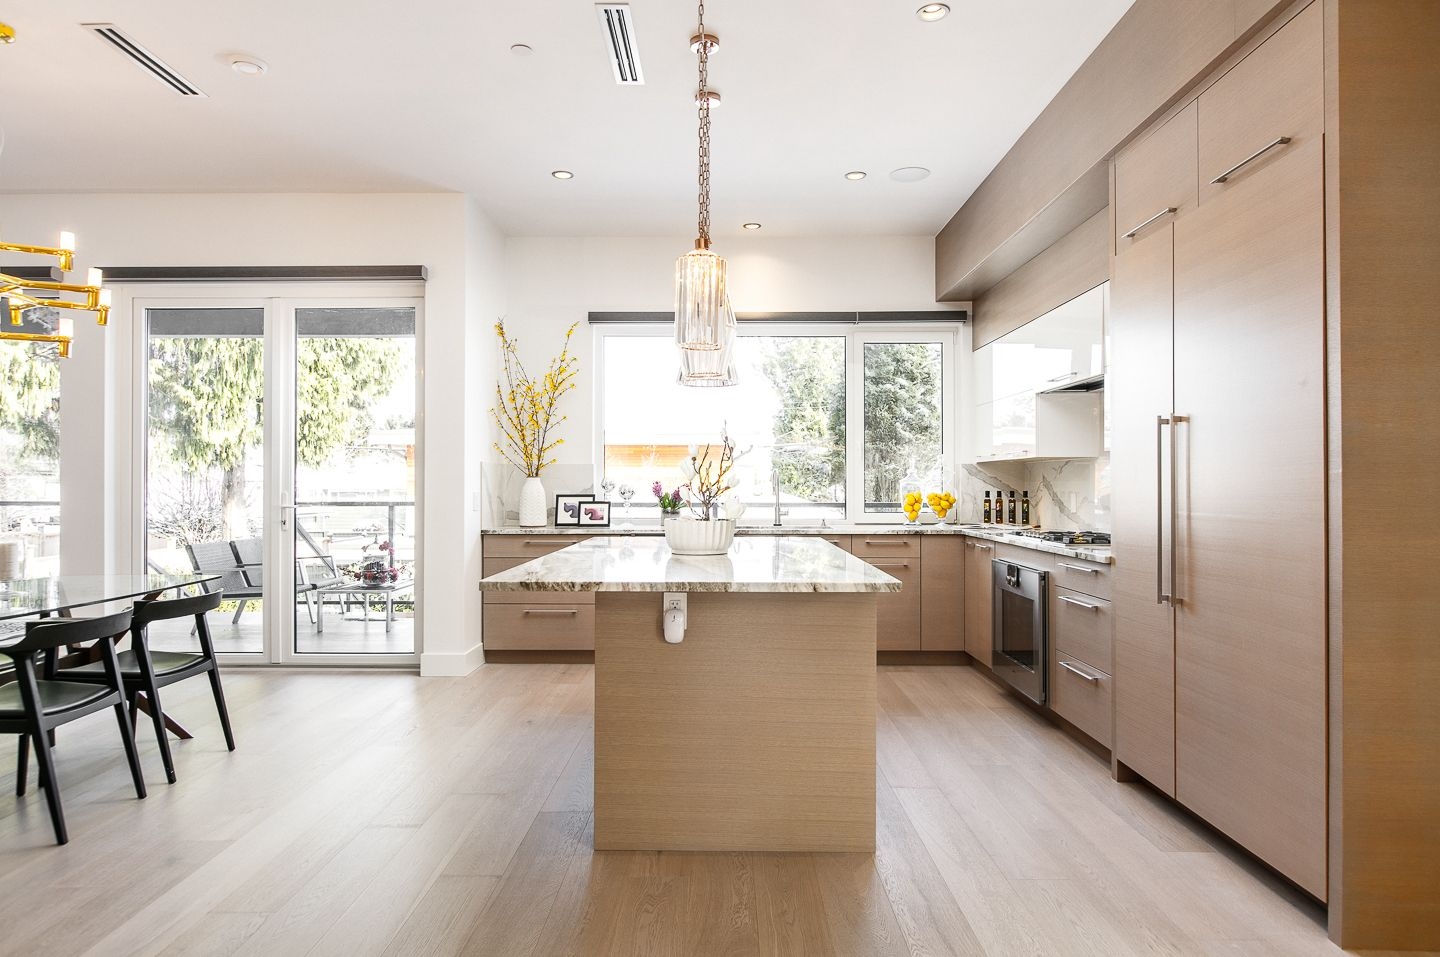 Photo 7: Photos: 6978 LAUREL ST in VANCOUVER: South Cambie House for sale (Vancouver West)